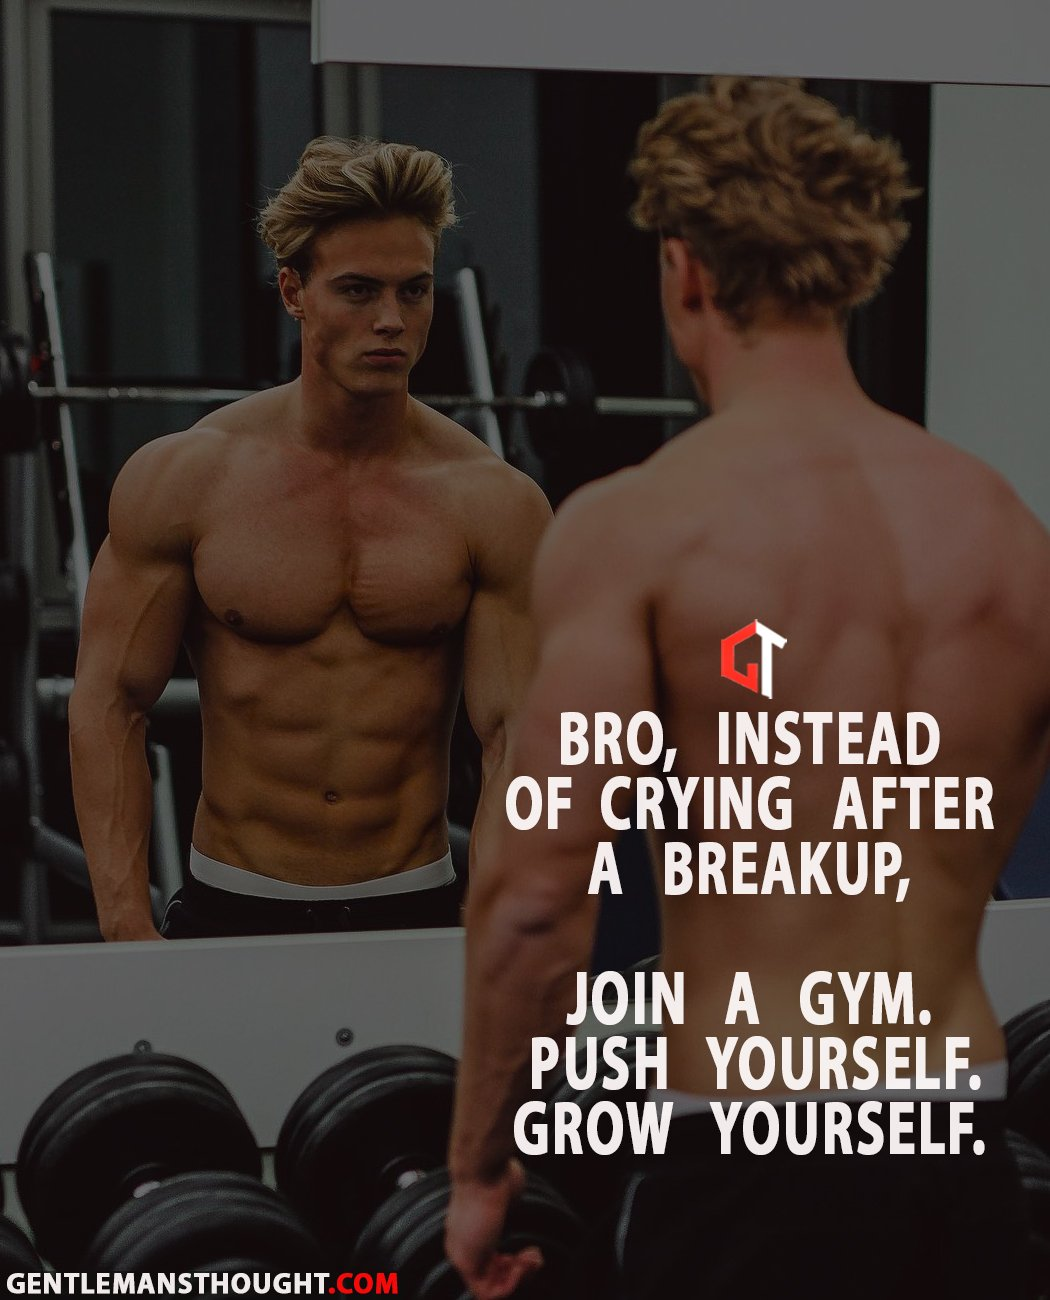 Bro, Instead of crying after a breakup, Join a gym. Push yourself. Grow yourself.